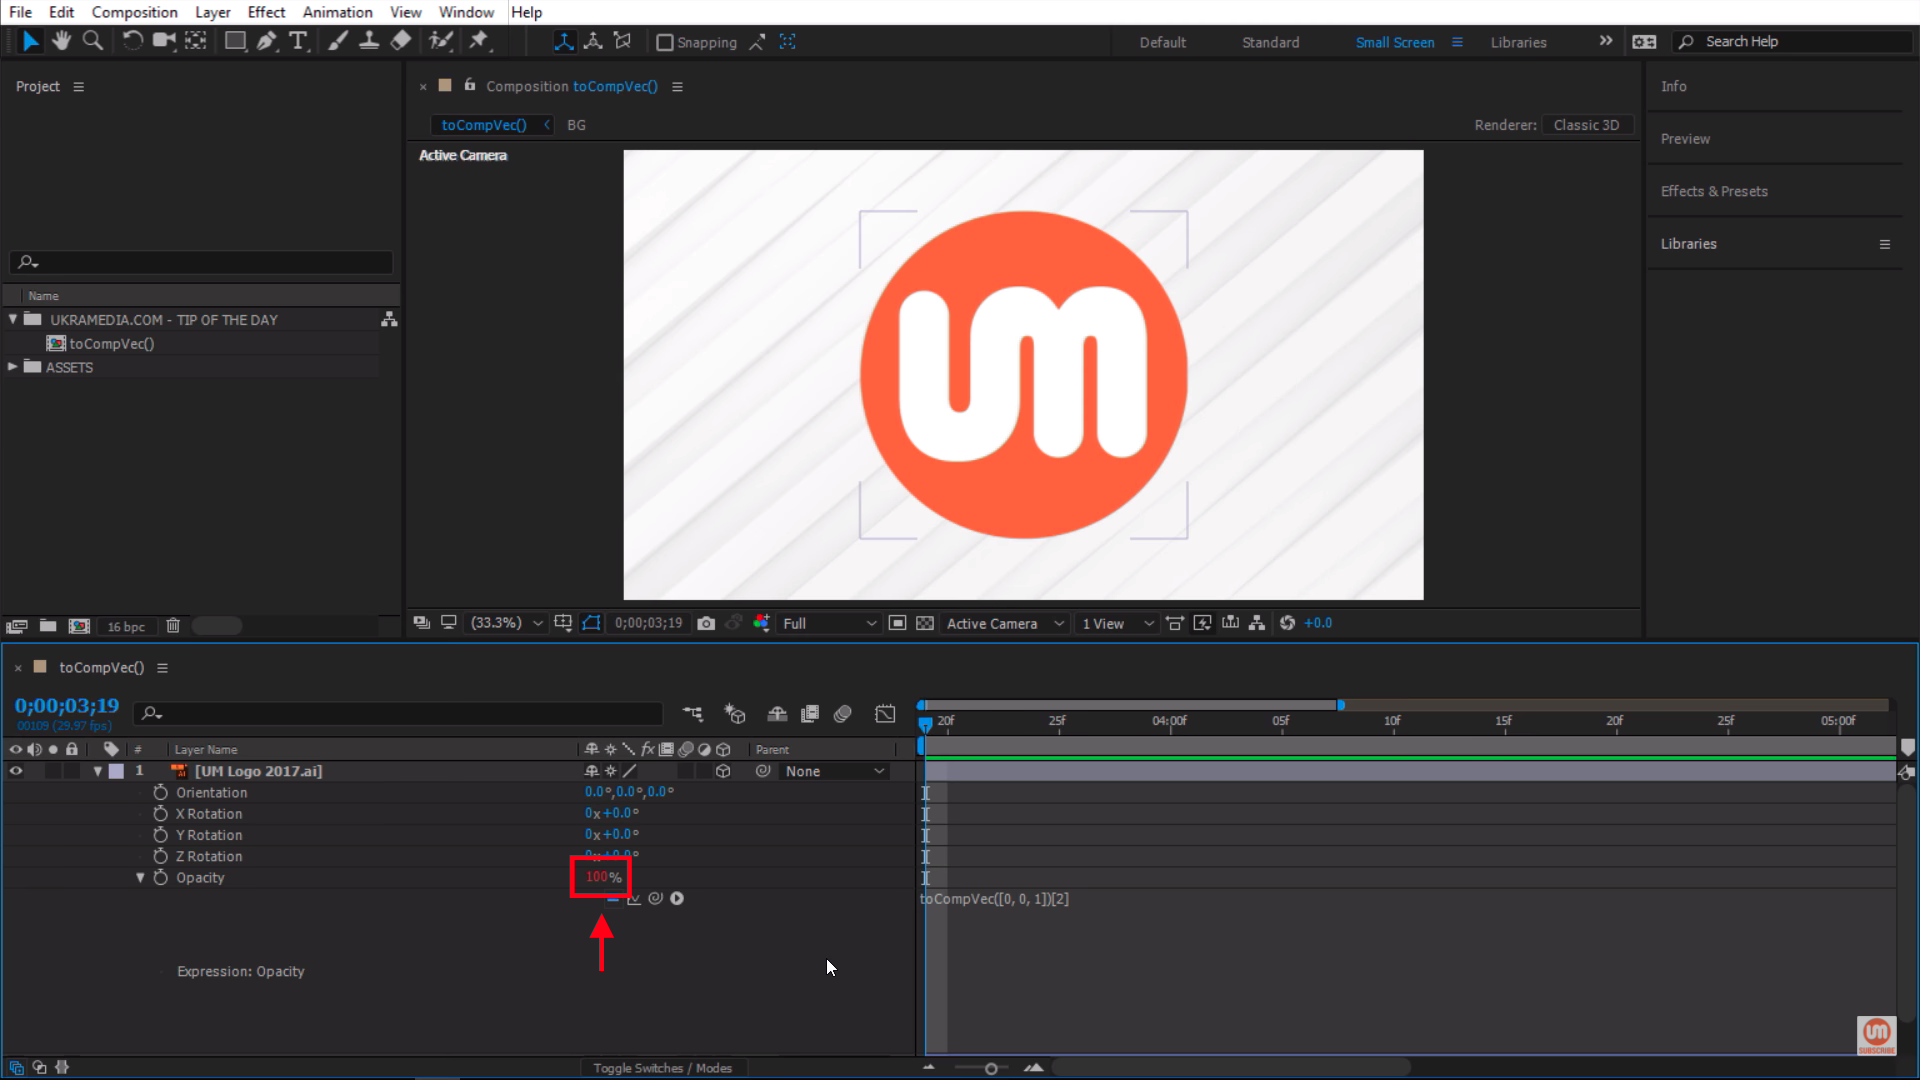 toComVec() After Effects Expression